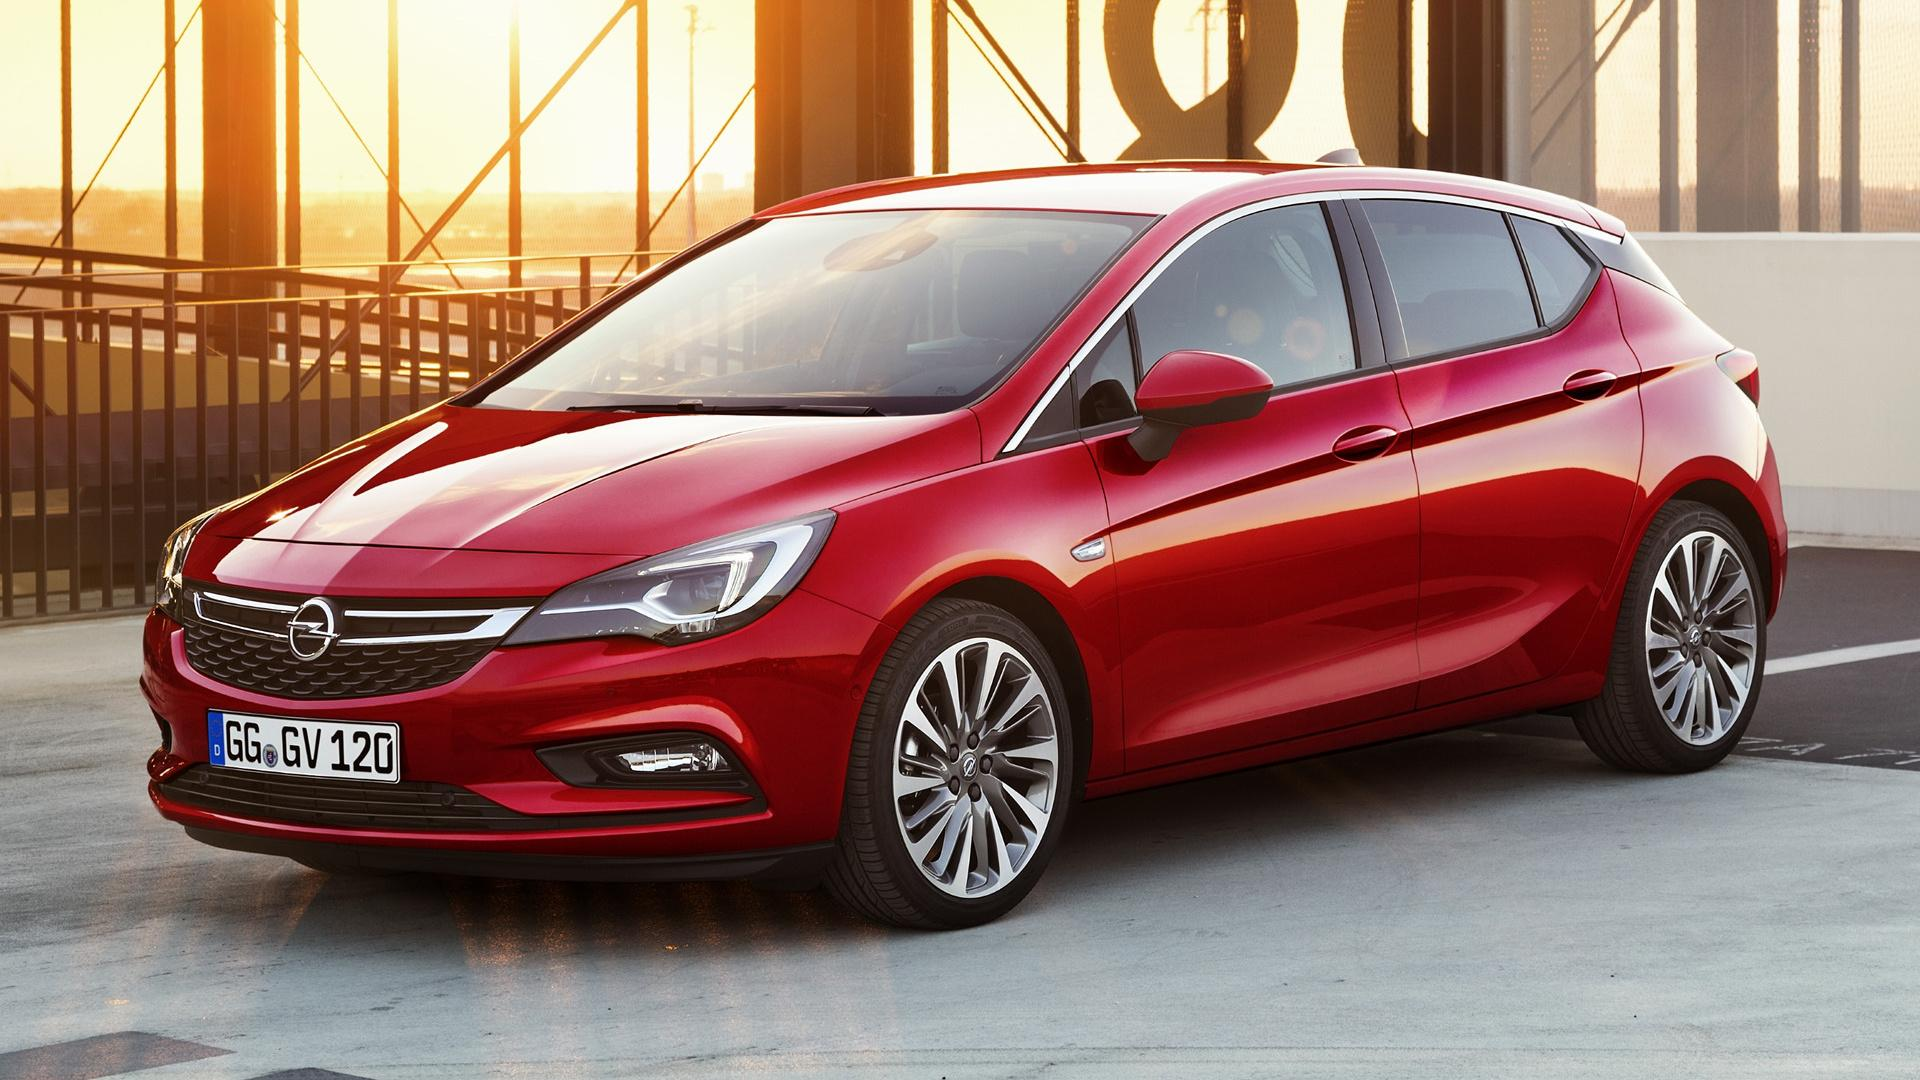 2015 Opel Astra - Wallpapers and HD Images | Car Pixel